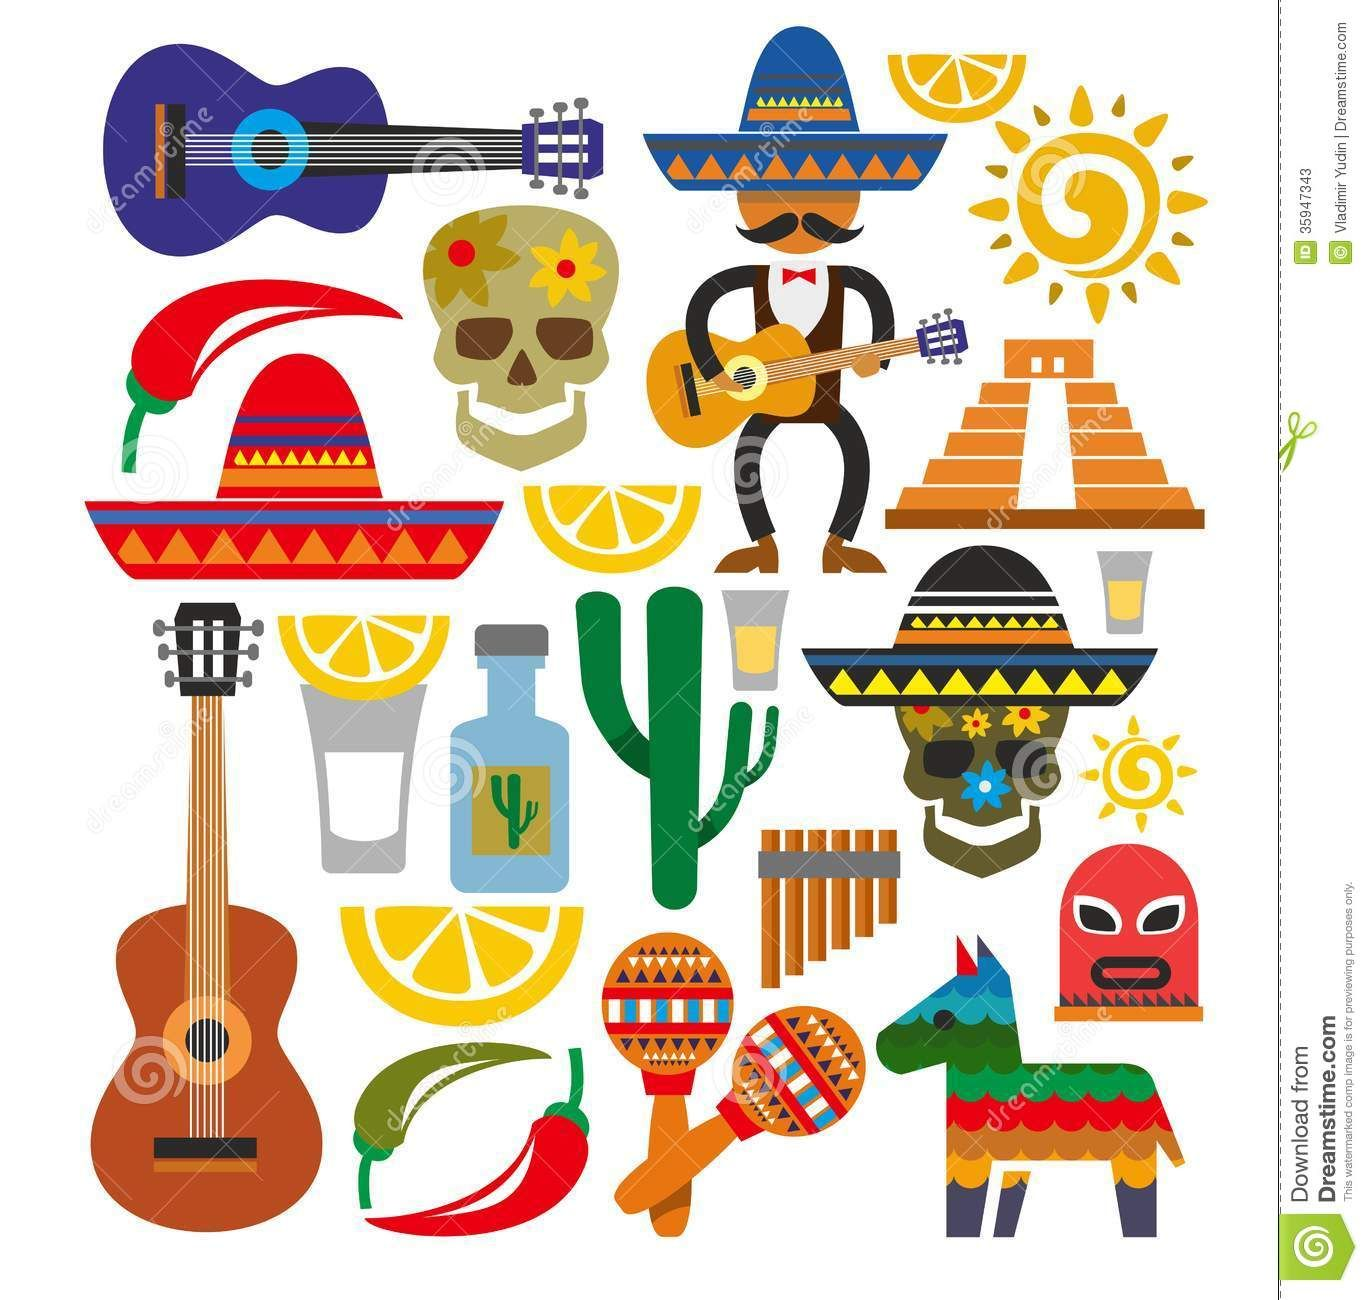 Mexico stock illustrations vectors clipart 10 311 for Mexican logos images